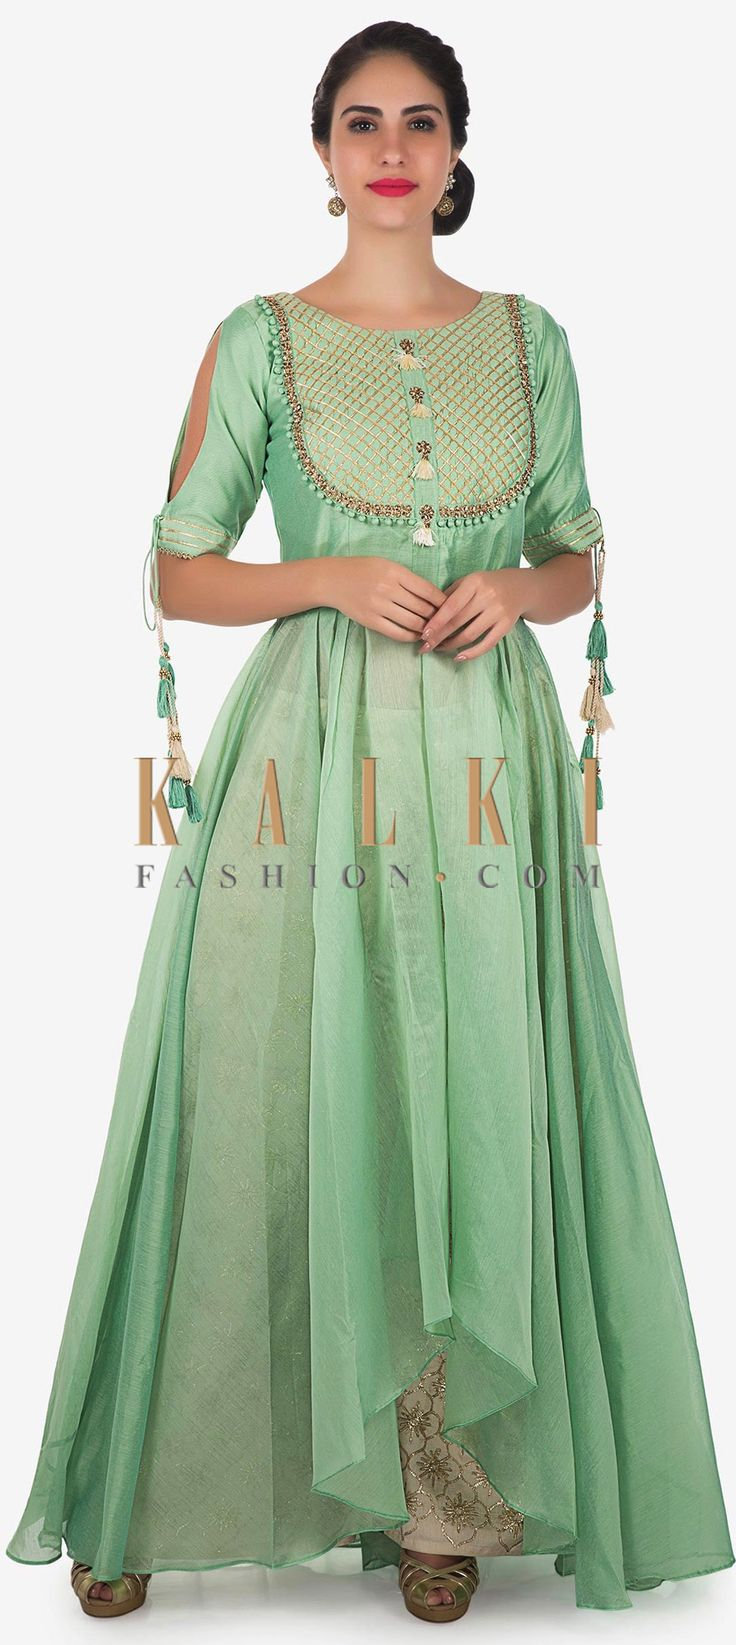 Buy Online from the link below. We ship worldwide Click Anywhere to Tag Pista green anarkali suit in cotton silk with gotta lace embroidered bodice only on Kalki  Pista green anarkali suit featuring in cotton silk. Placket is embellished in gotta lace and kundan and sequin embroidery. Matched with cream pant and net dupatta in lurex border. Slight variation in color is possible.